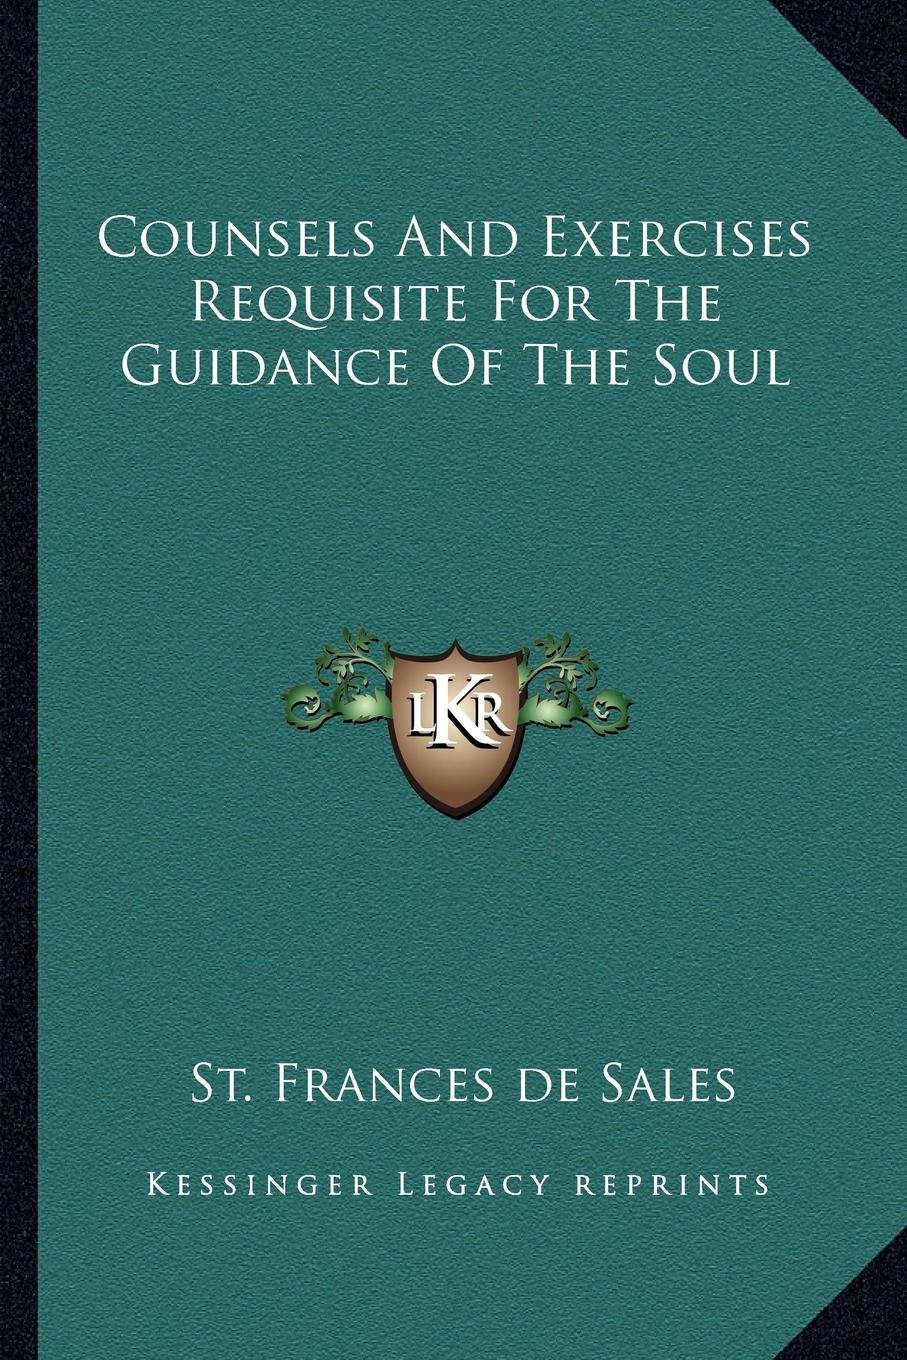 Counsels And Exercises Requisite For The Guidance Of The Soul ebook